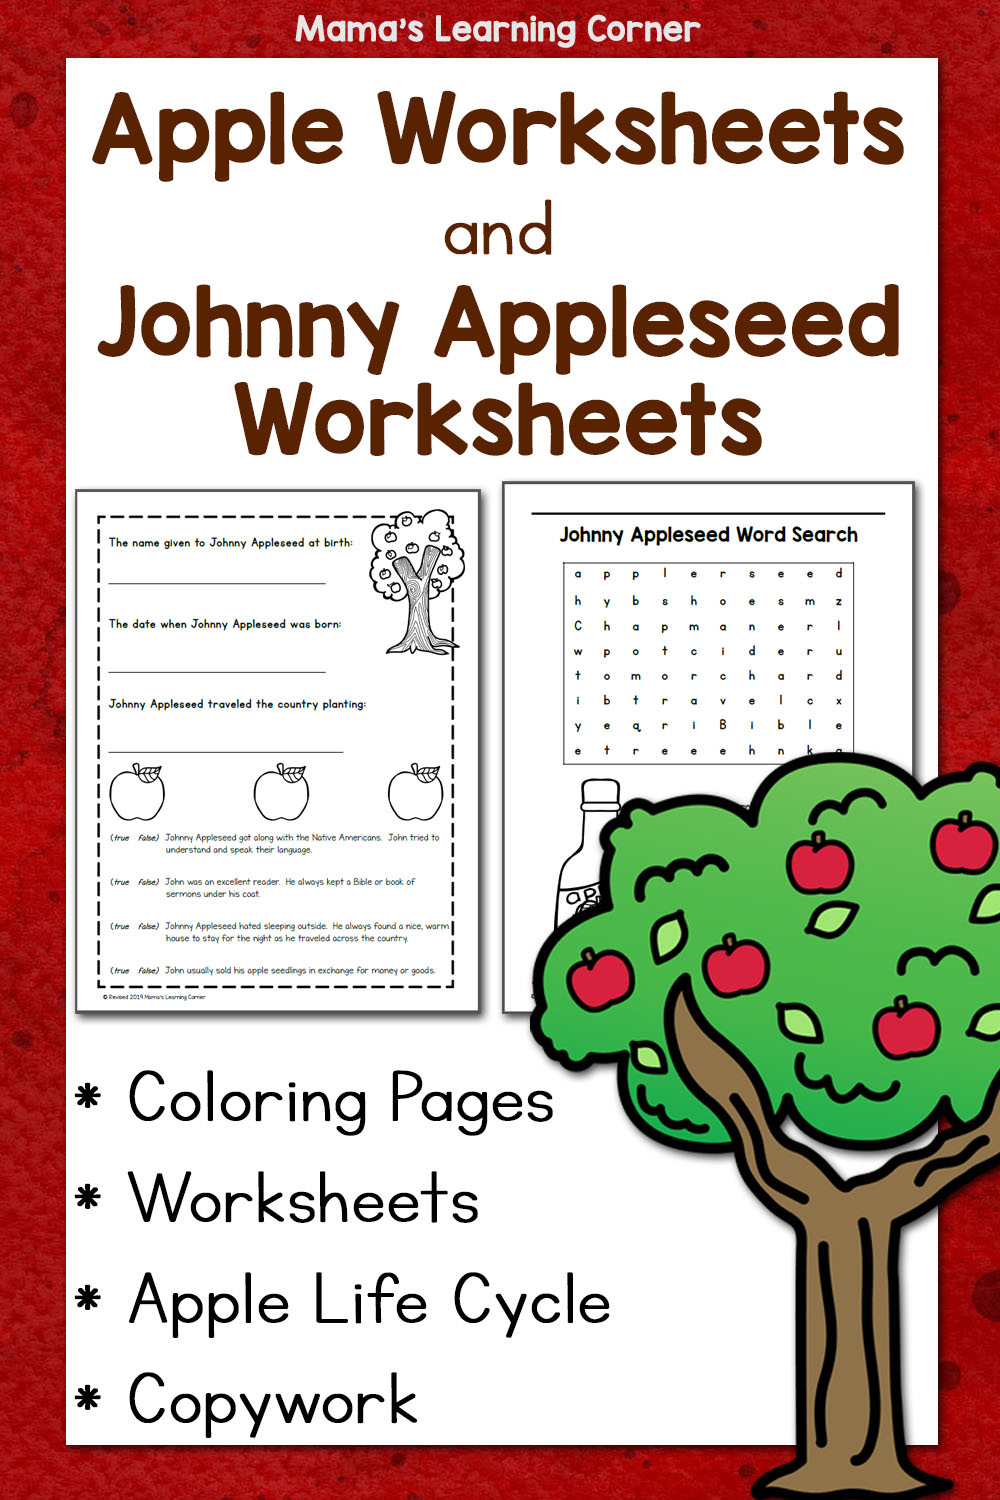 hight resolution of Apple Worksheets and Johnny Appleseed Worksheets - Mamas Learning Corner